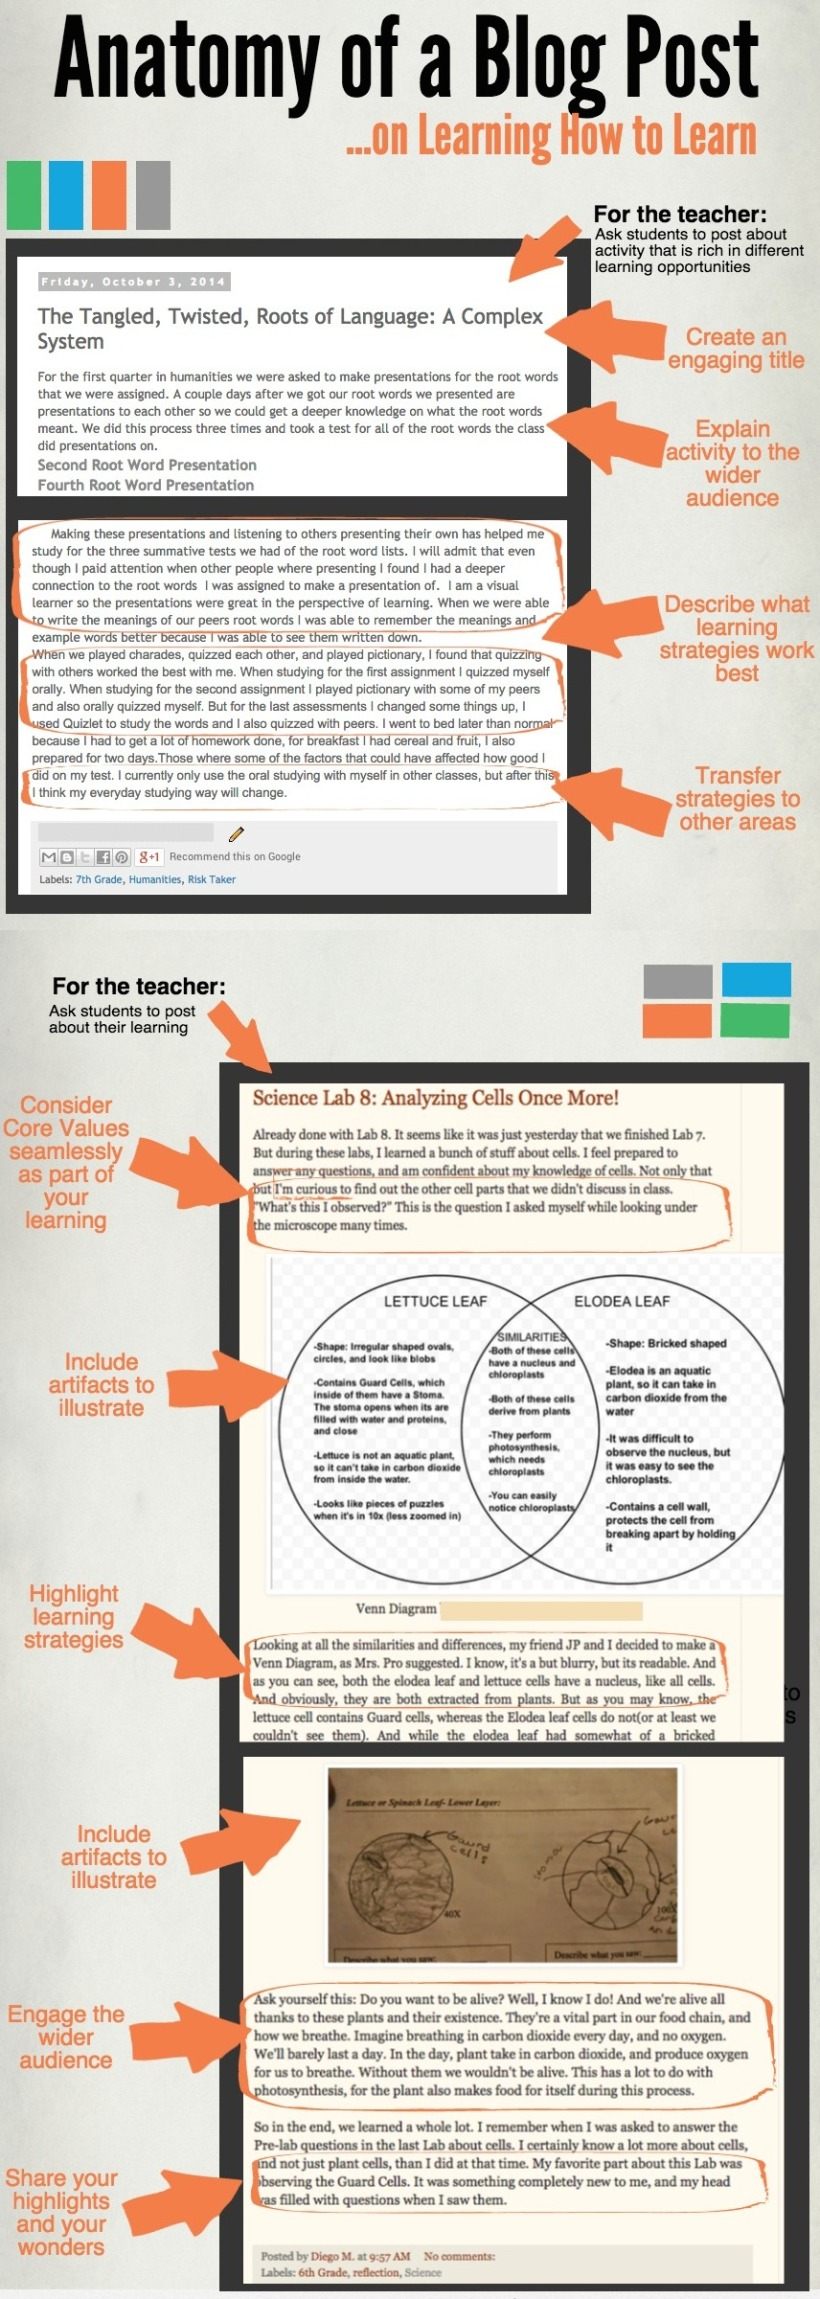 Anatomy of a Blog Post Learn How to Learn